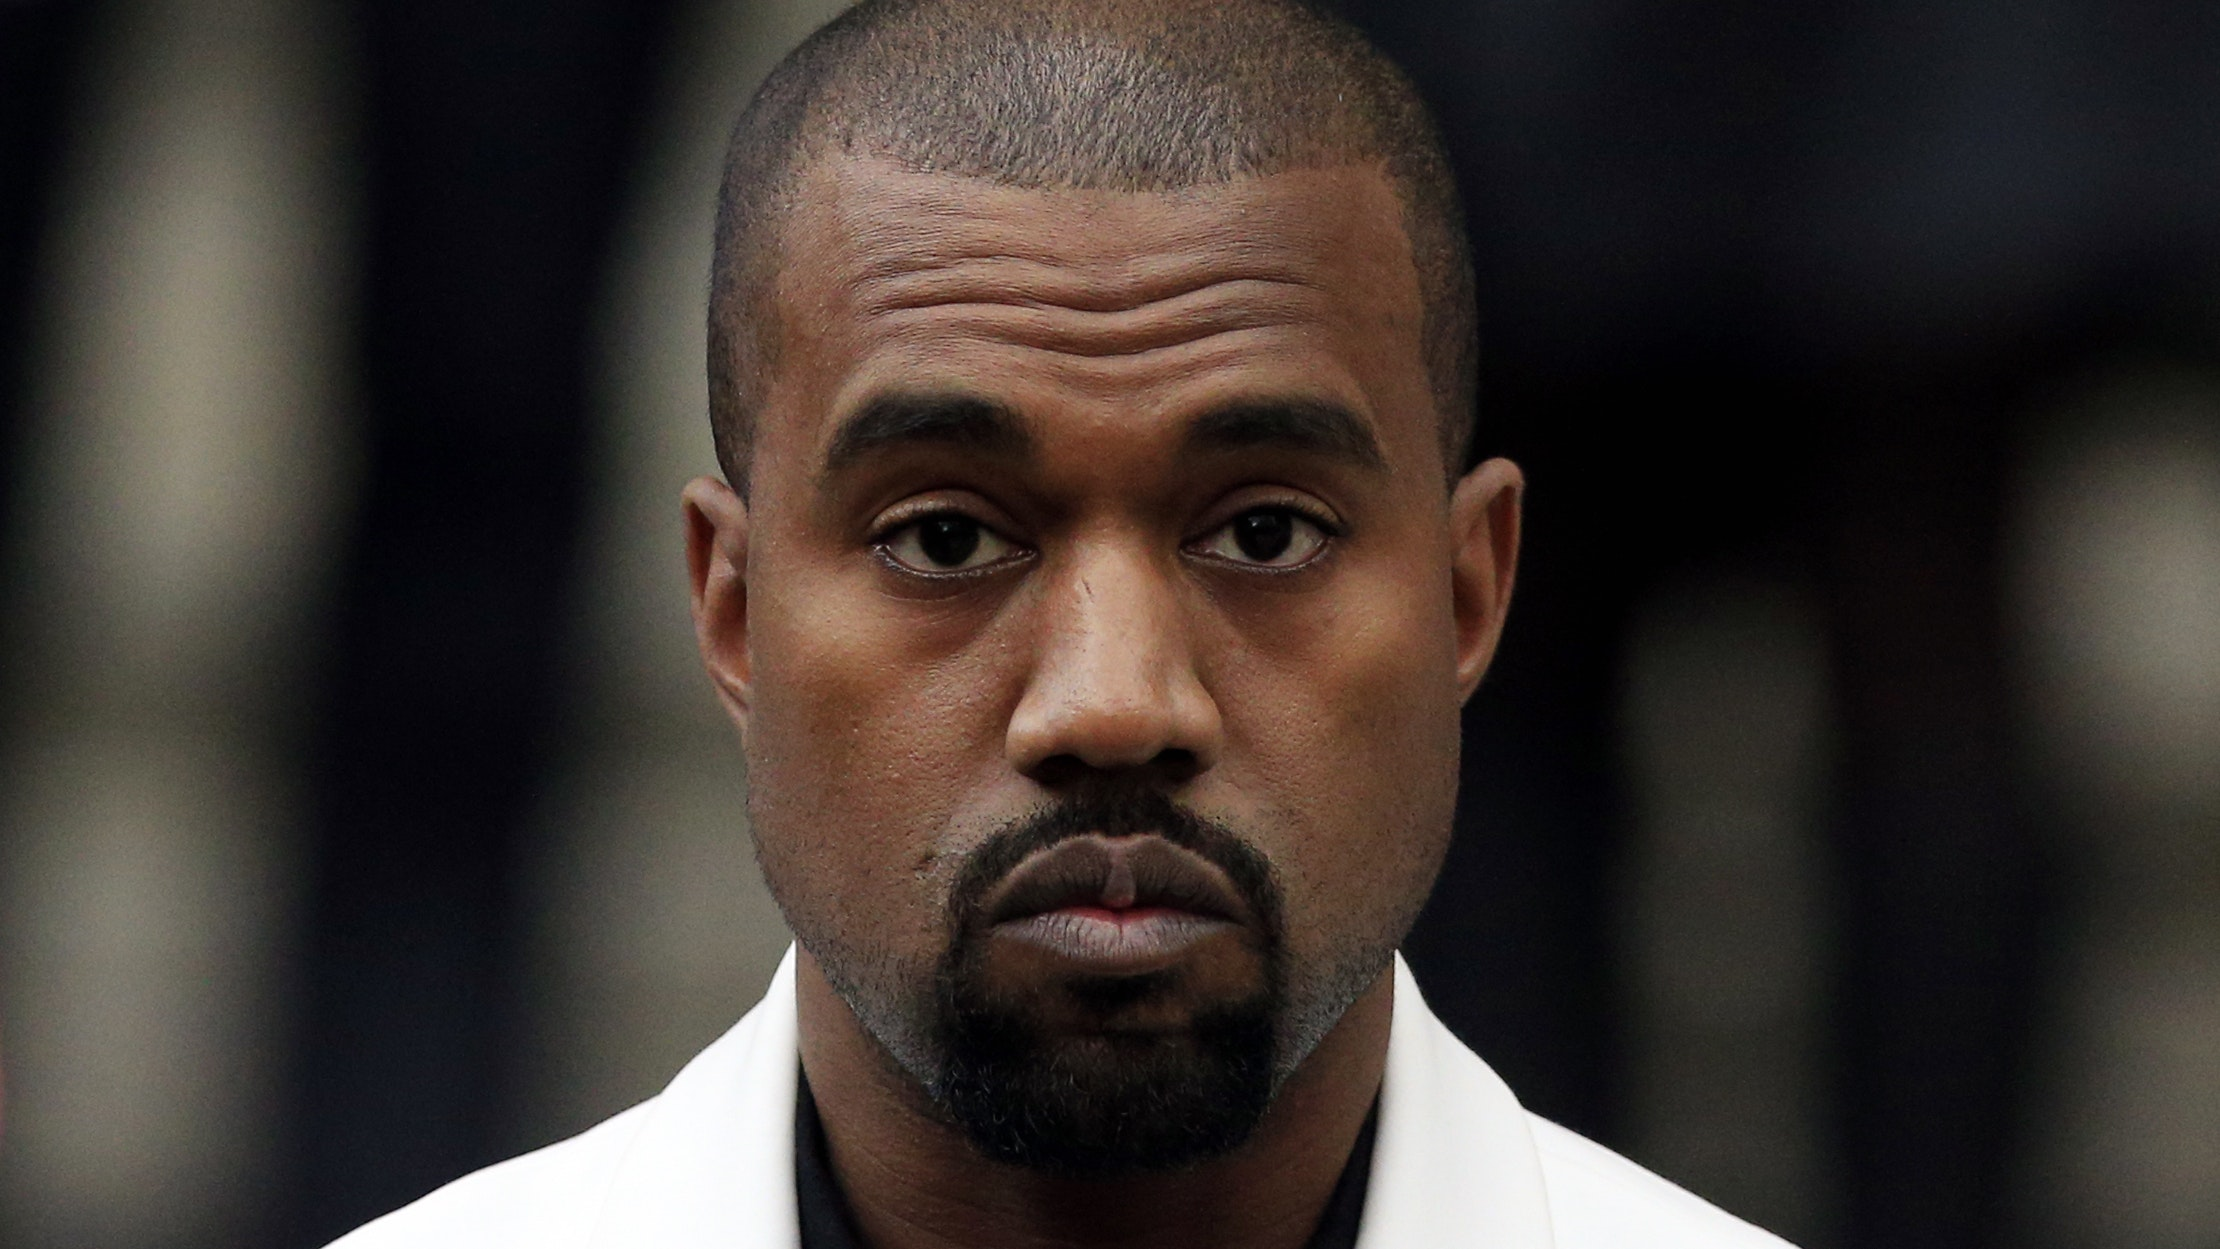 Kanye West settled lawsuit from 2016 breakdown